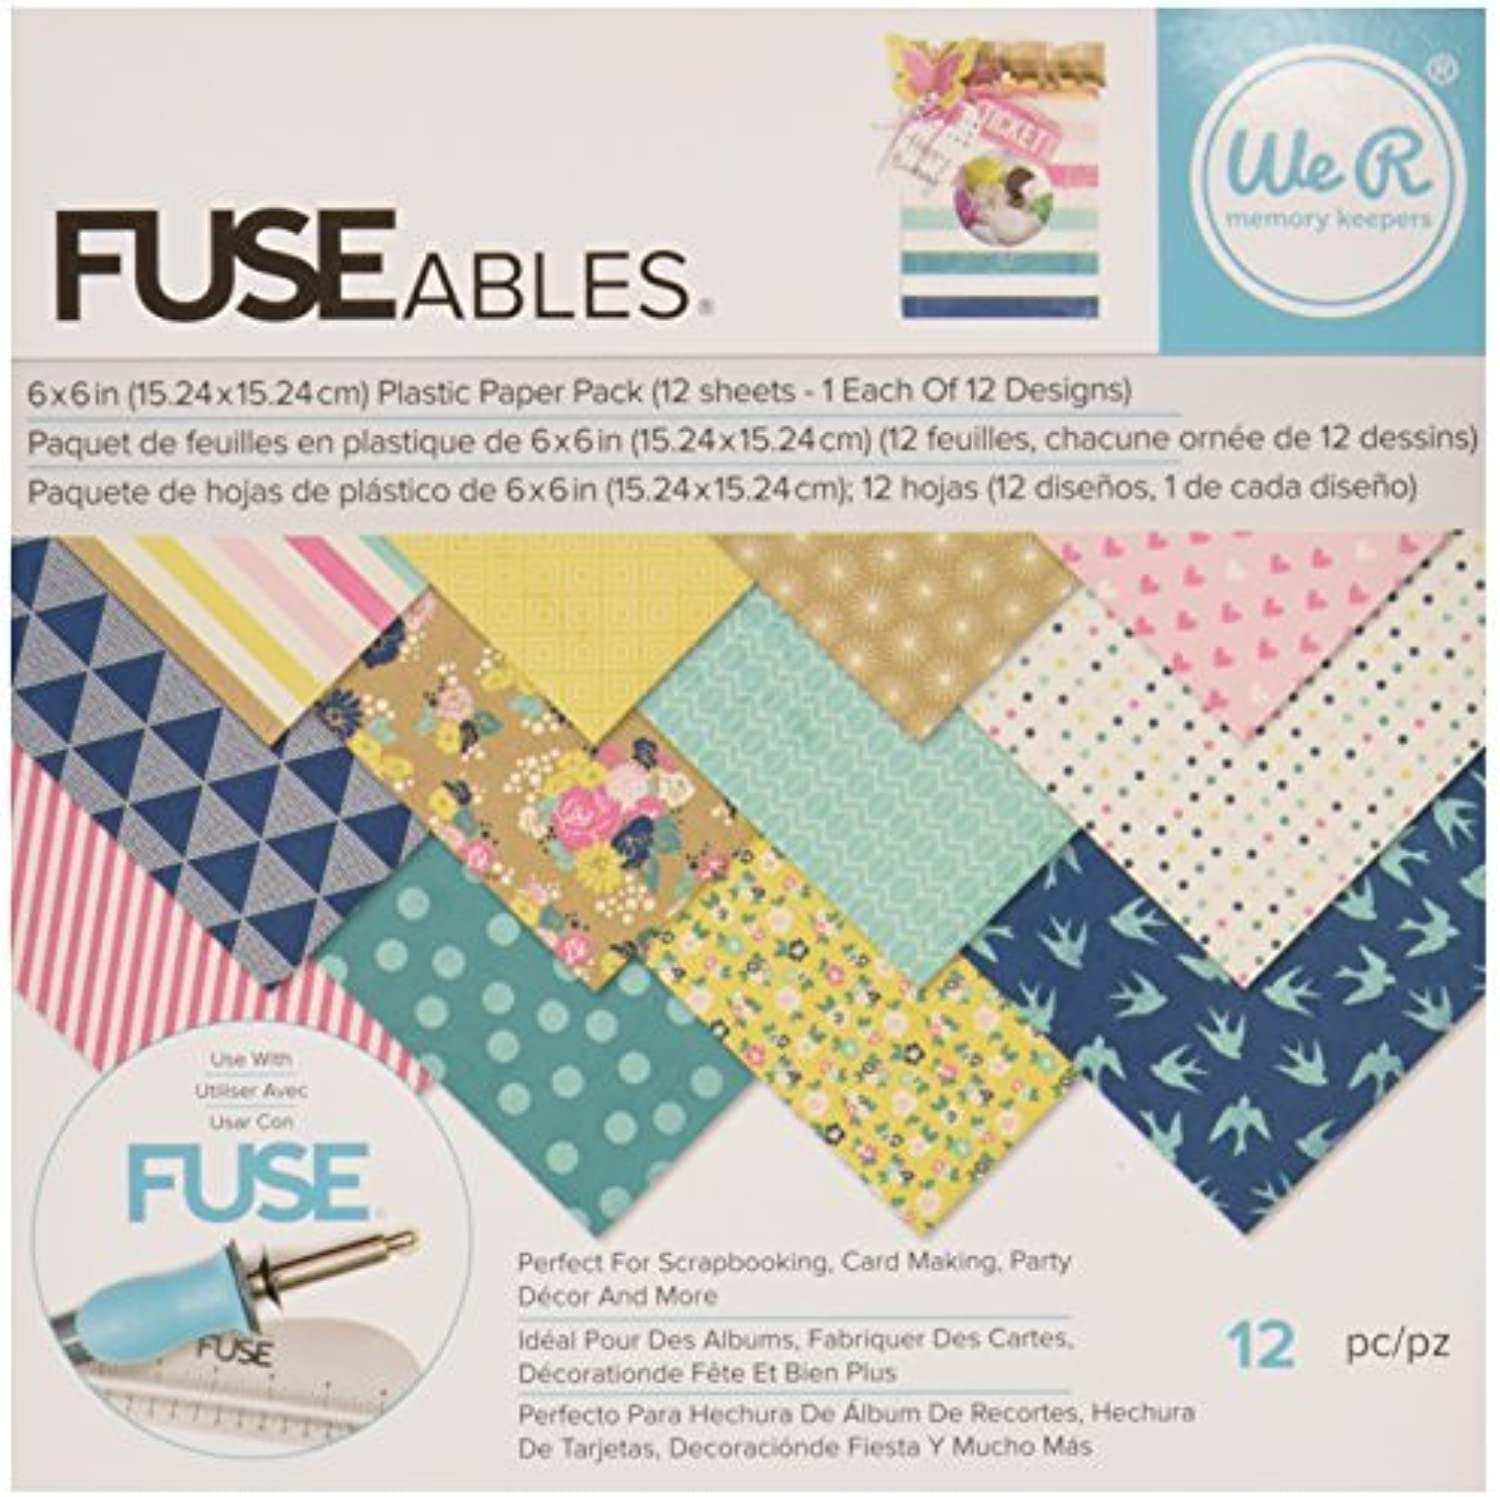 We R Memory Keepers 12 Sheet Fuseables Fuseables Fuseables Patterned Paper Pack, 6 x 6 by We R Memory Keepers B01KBAW506   ein guter Ruf in der Welt  b10347